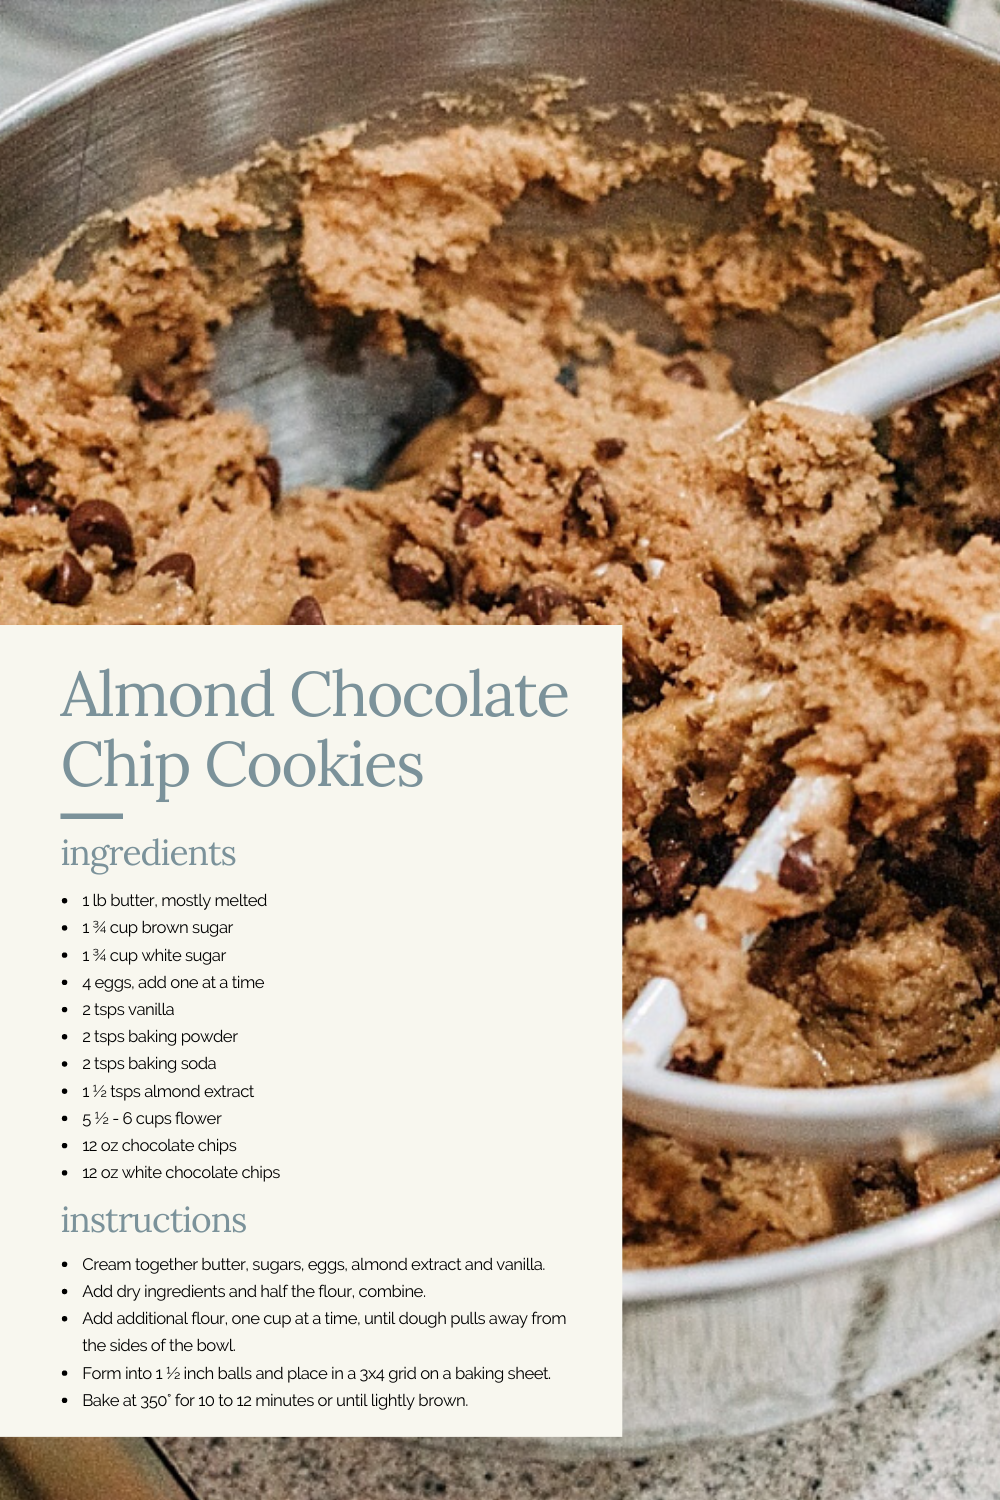 Almond Chocolate Chips Cookies | AKA The Yummiest Cookies EVER